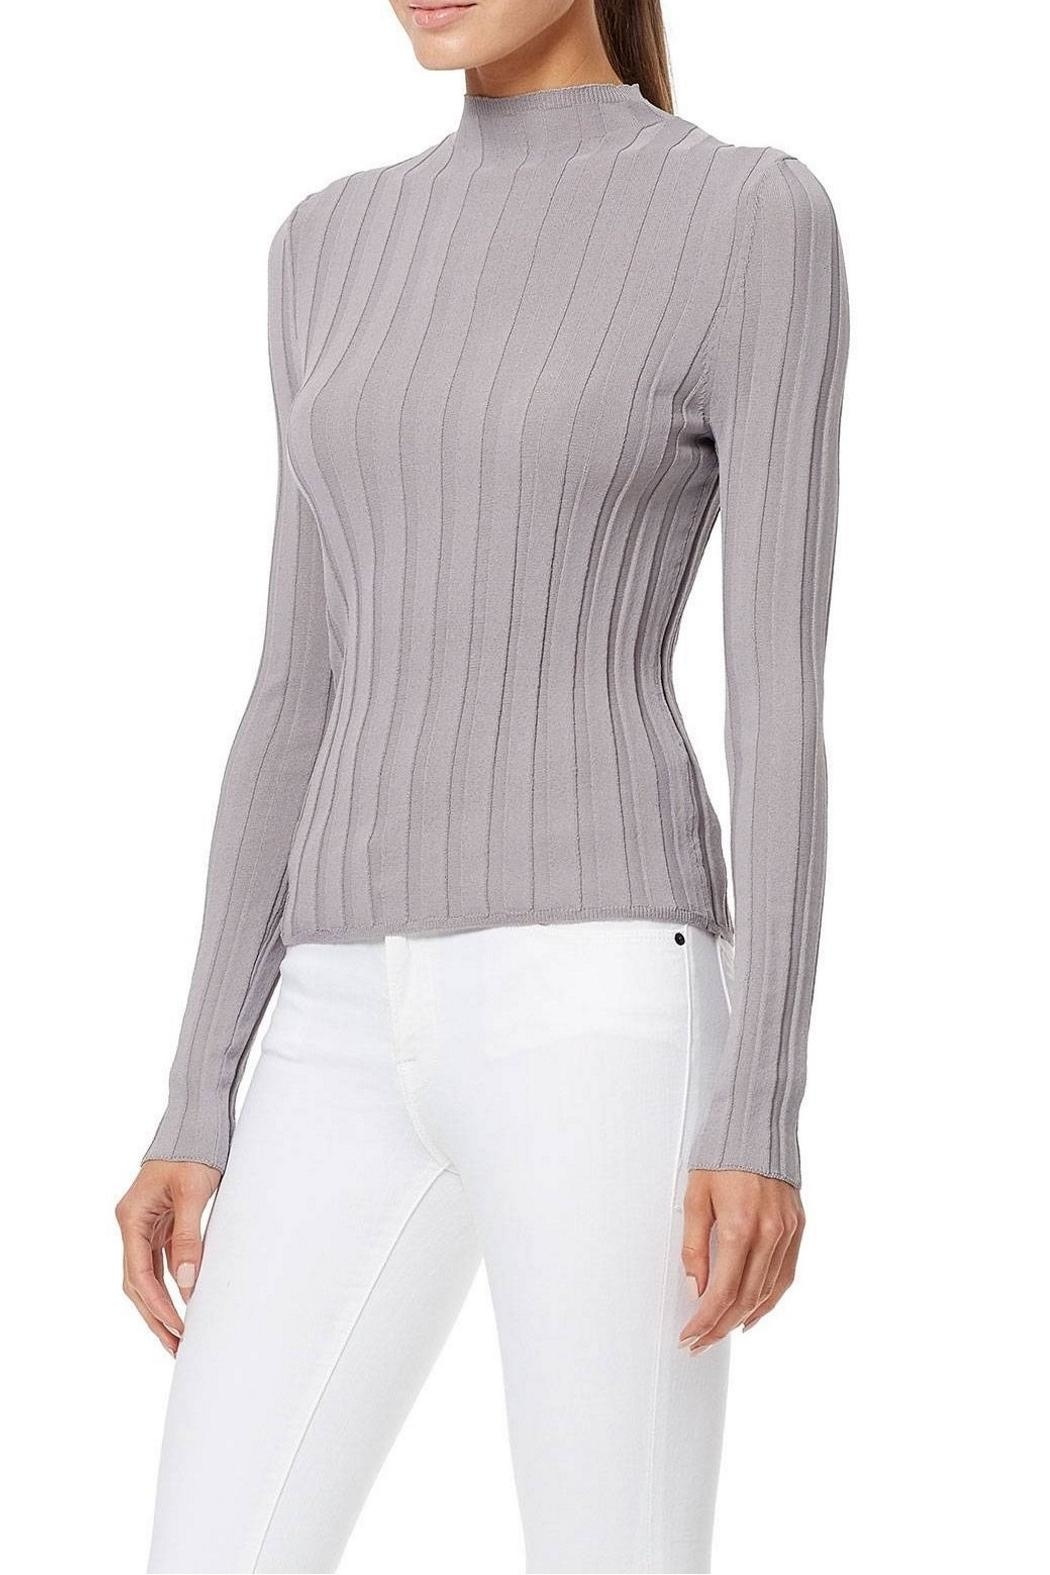 360 Cashmere Amalie Ribbed Top - Front Full Image